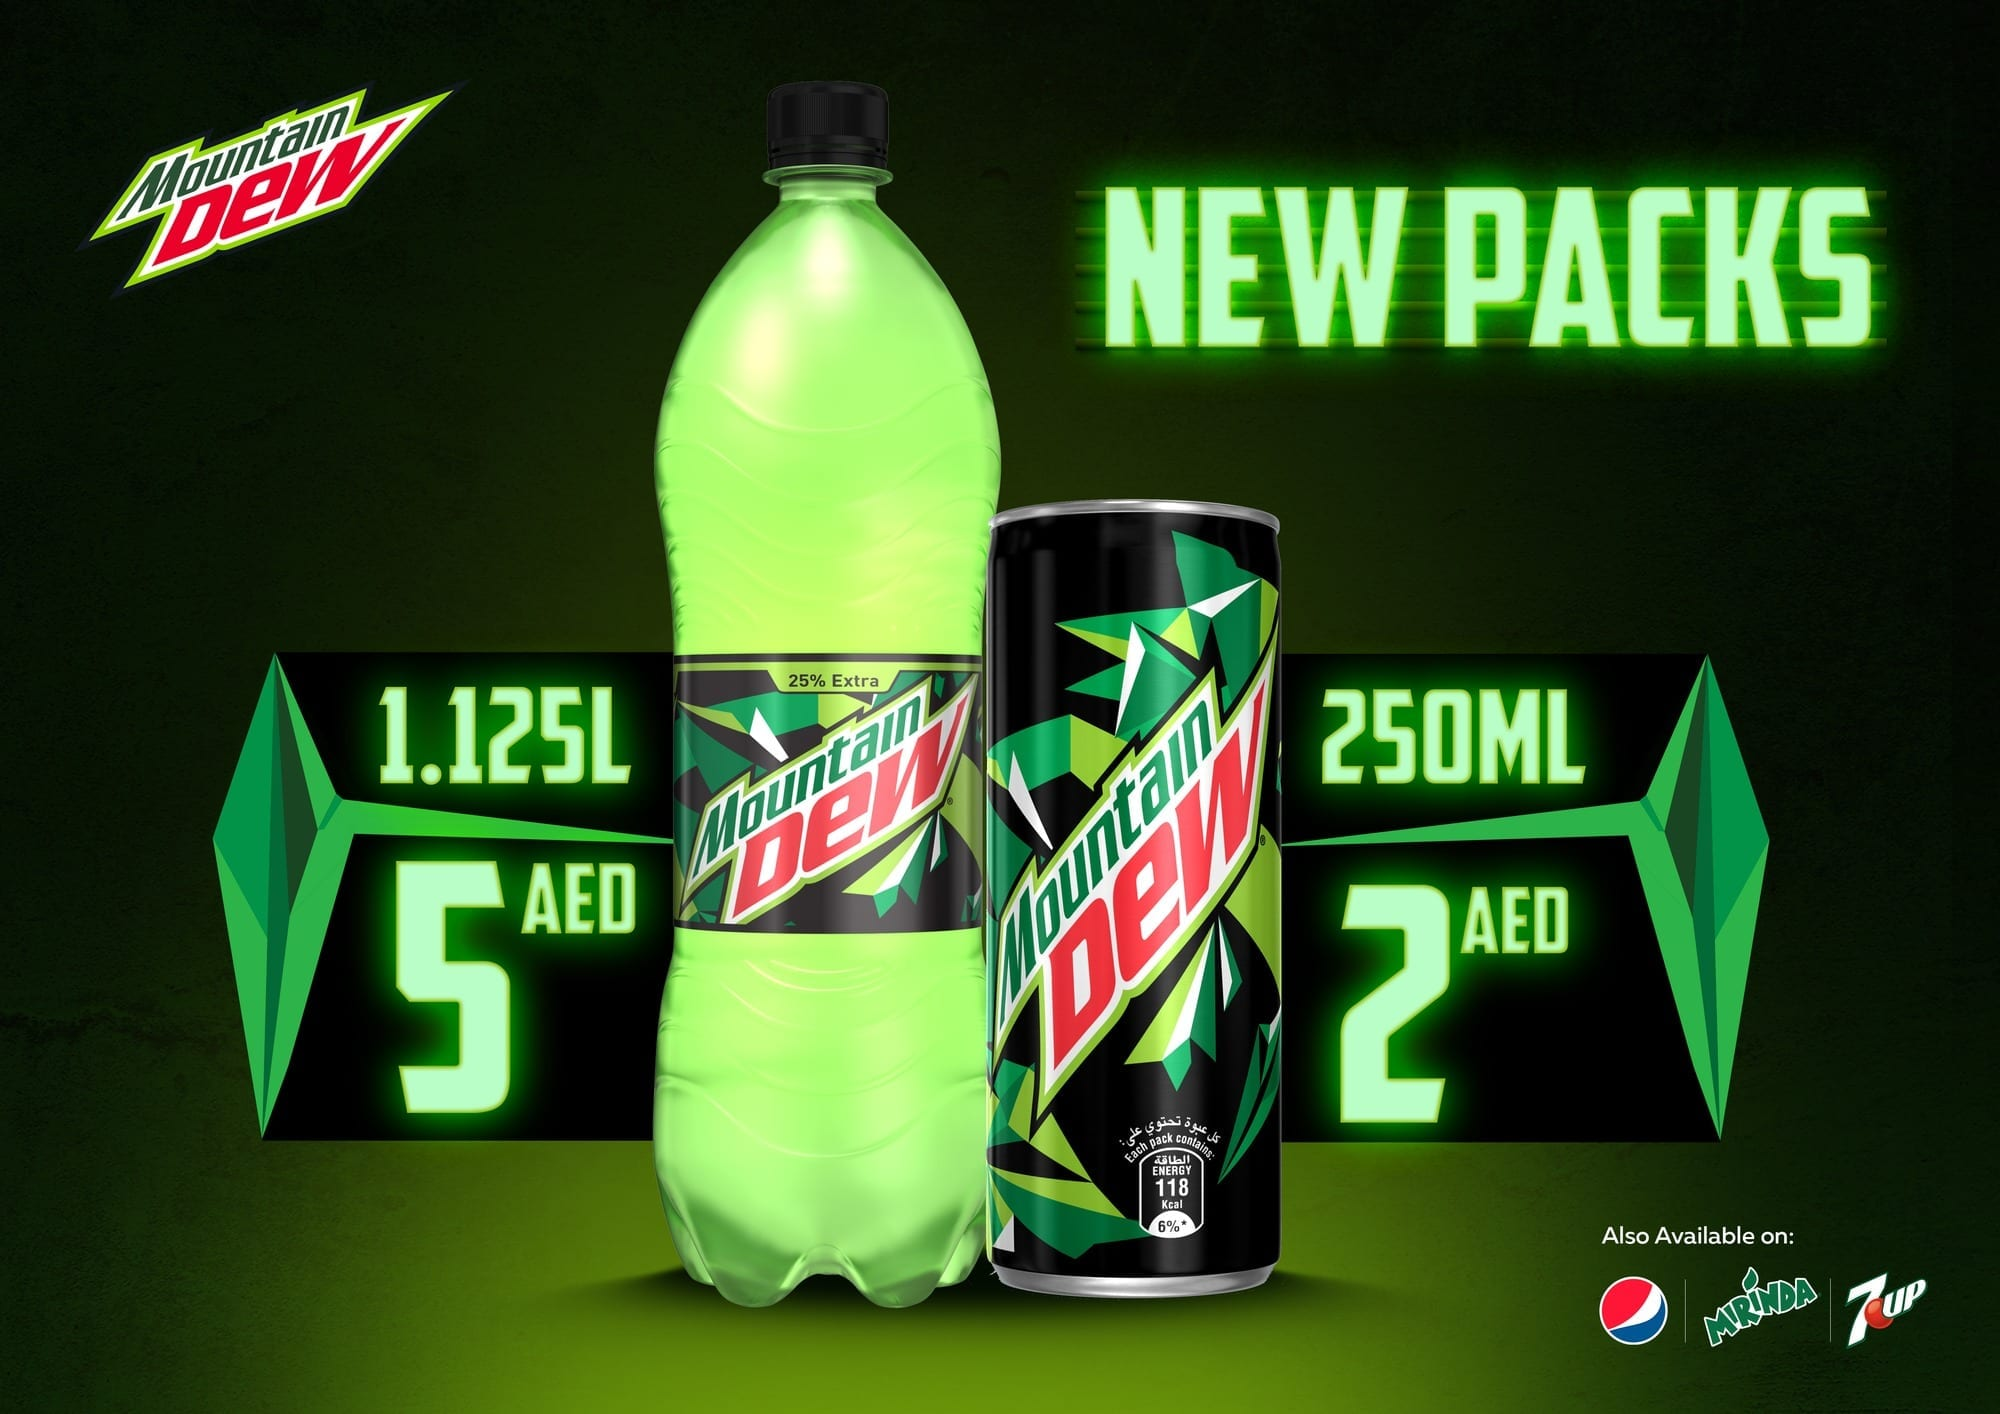 Final Mountain Dew Visual